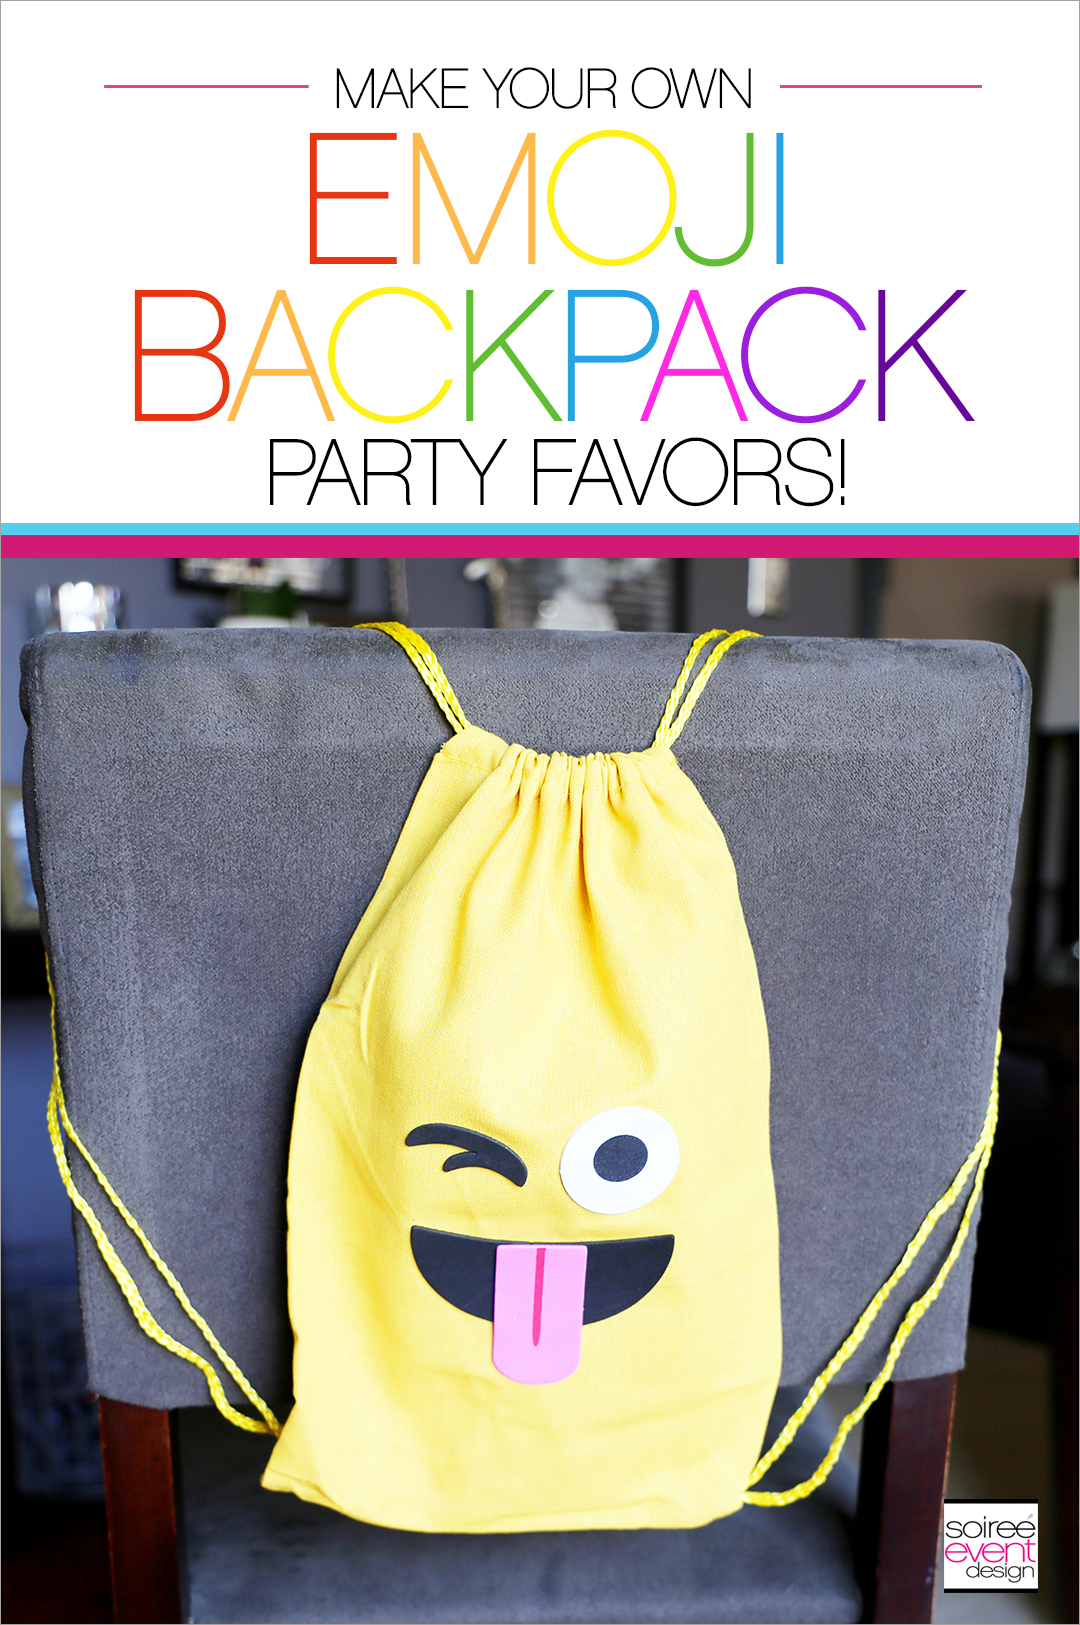 Emoji Backpacks Party Favors_Soiree Event Design